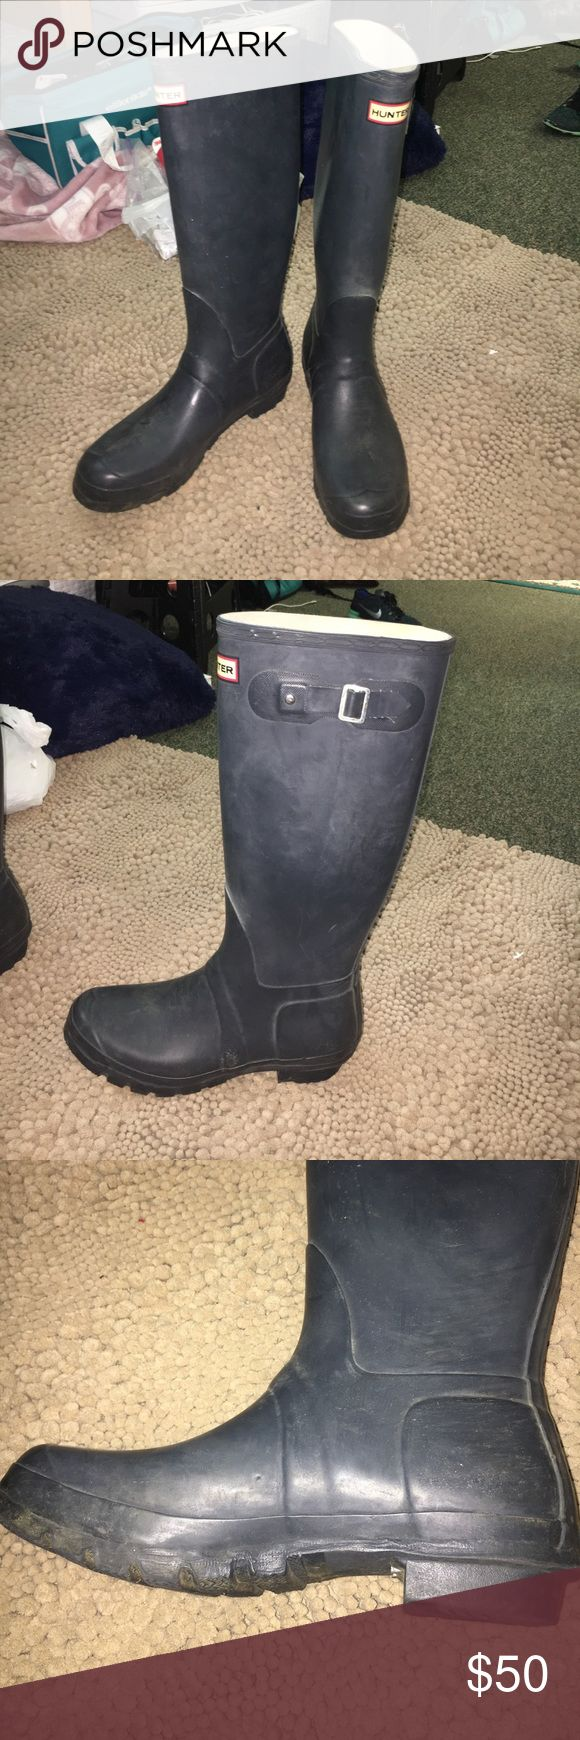 Navy Blue Tall Hunter Rain Boots Bought slightly used, no damage but worn slightly as shown in pictures. Still very cute and love wearing these! Hunter Boots Shoes Winter & Rain Boots